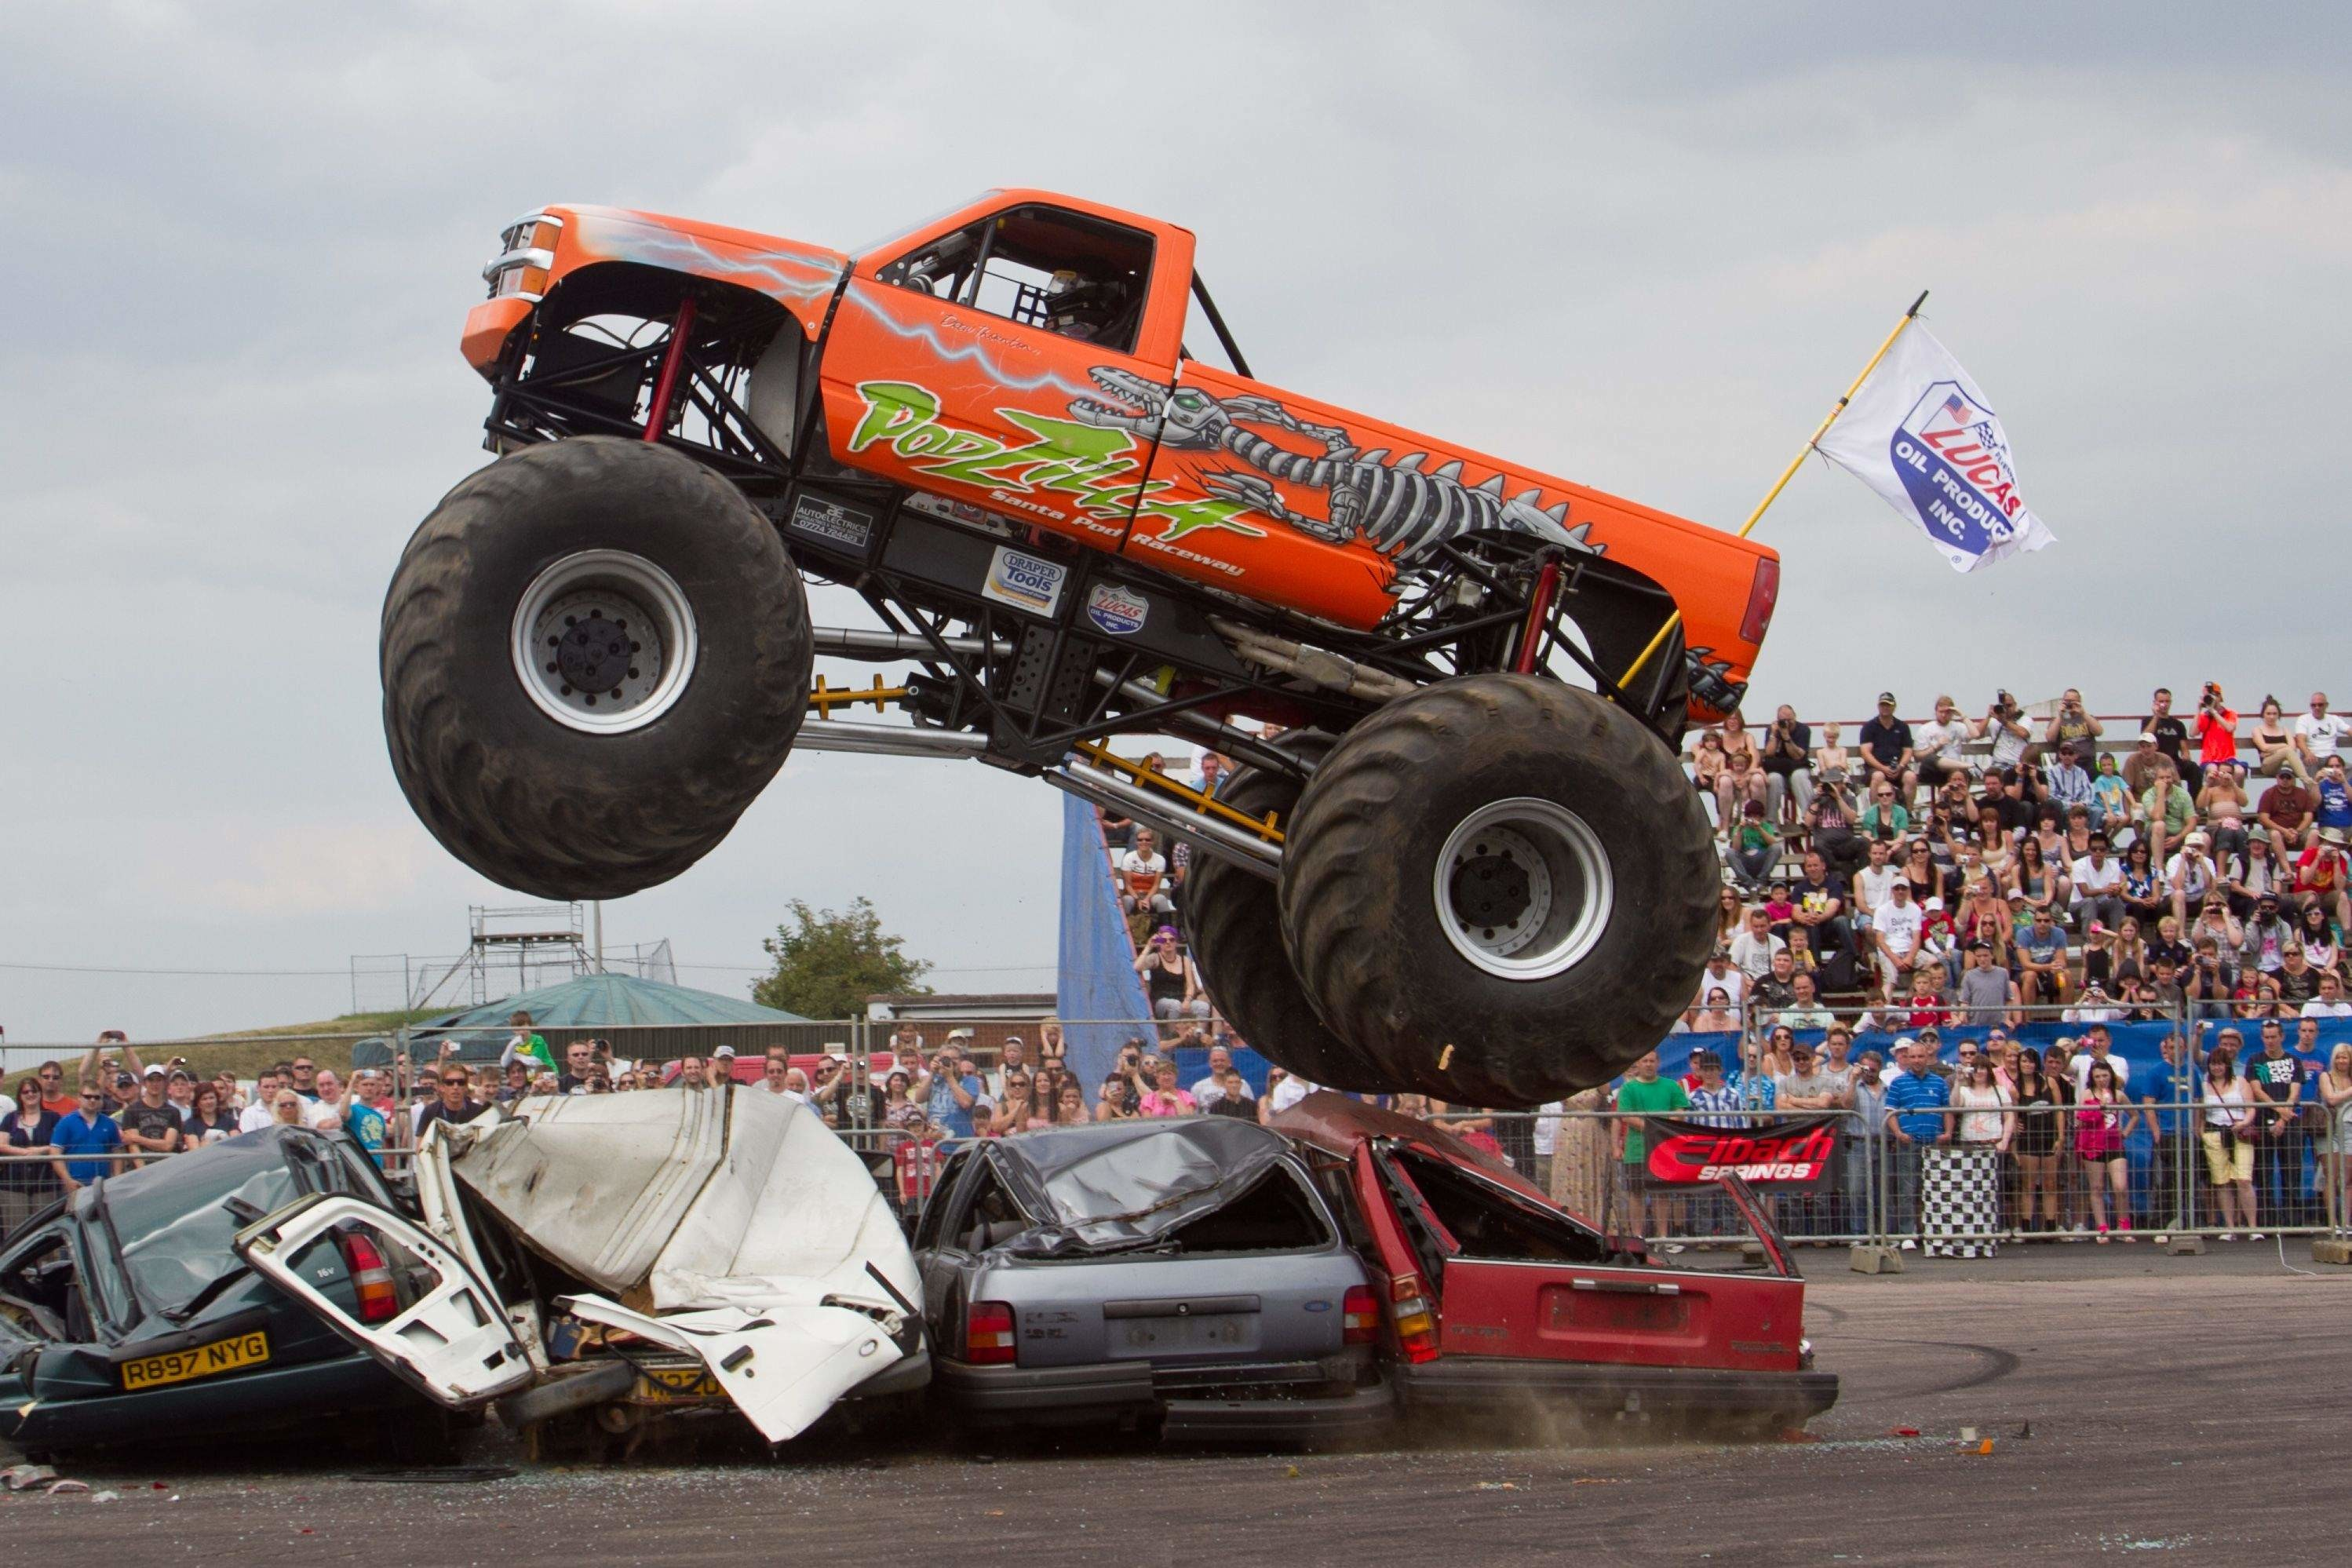 Res: 2997x1998, Images of Monster Truck |